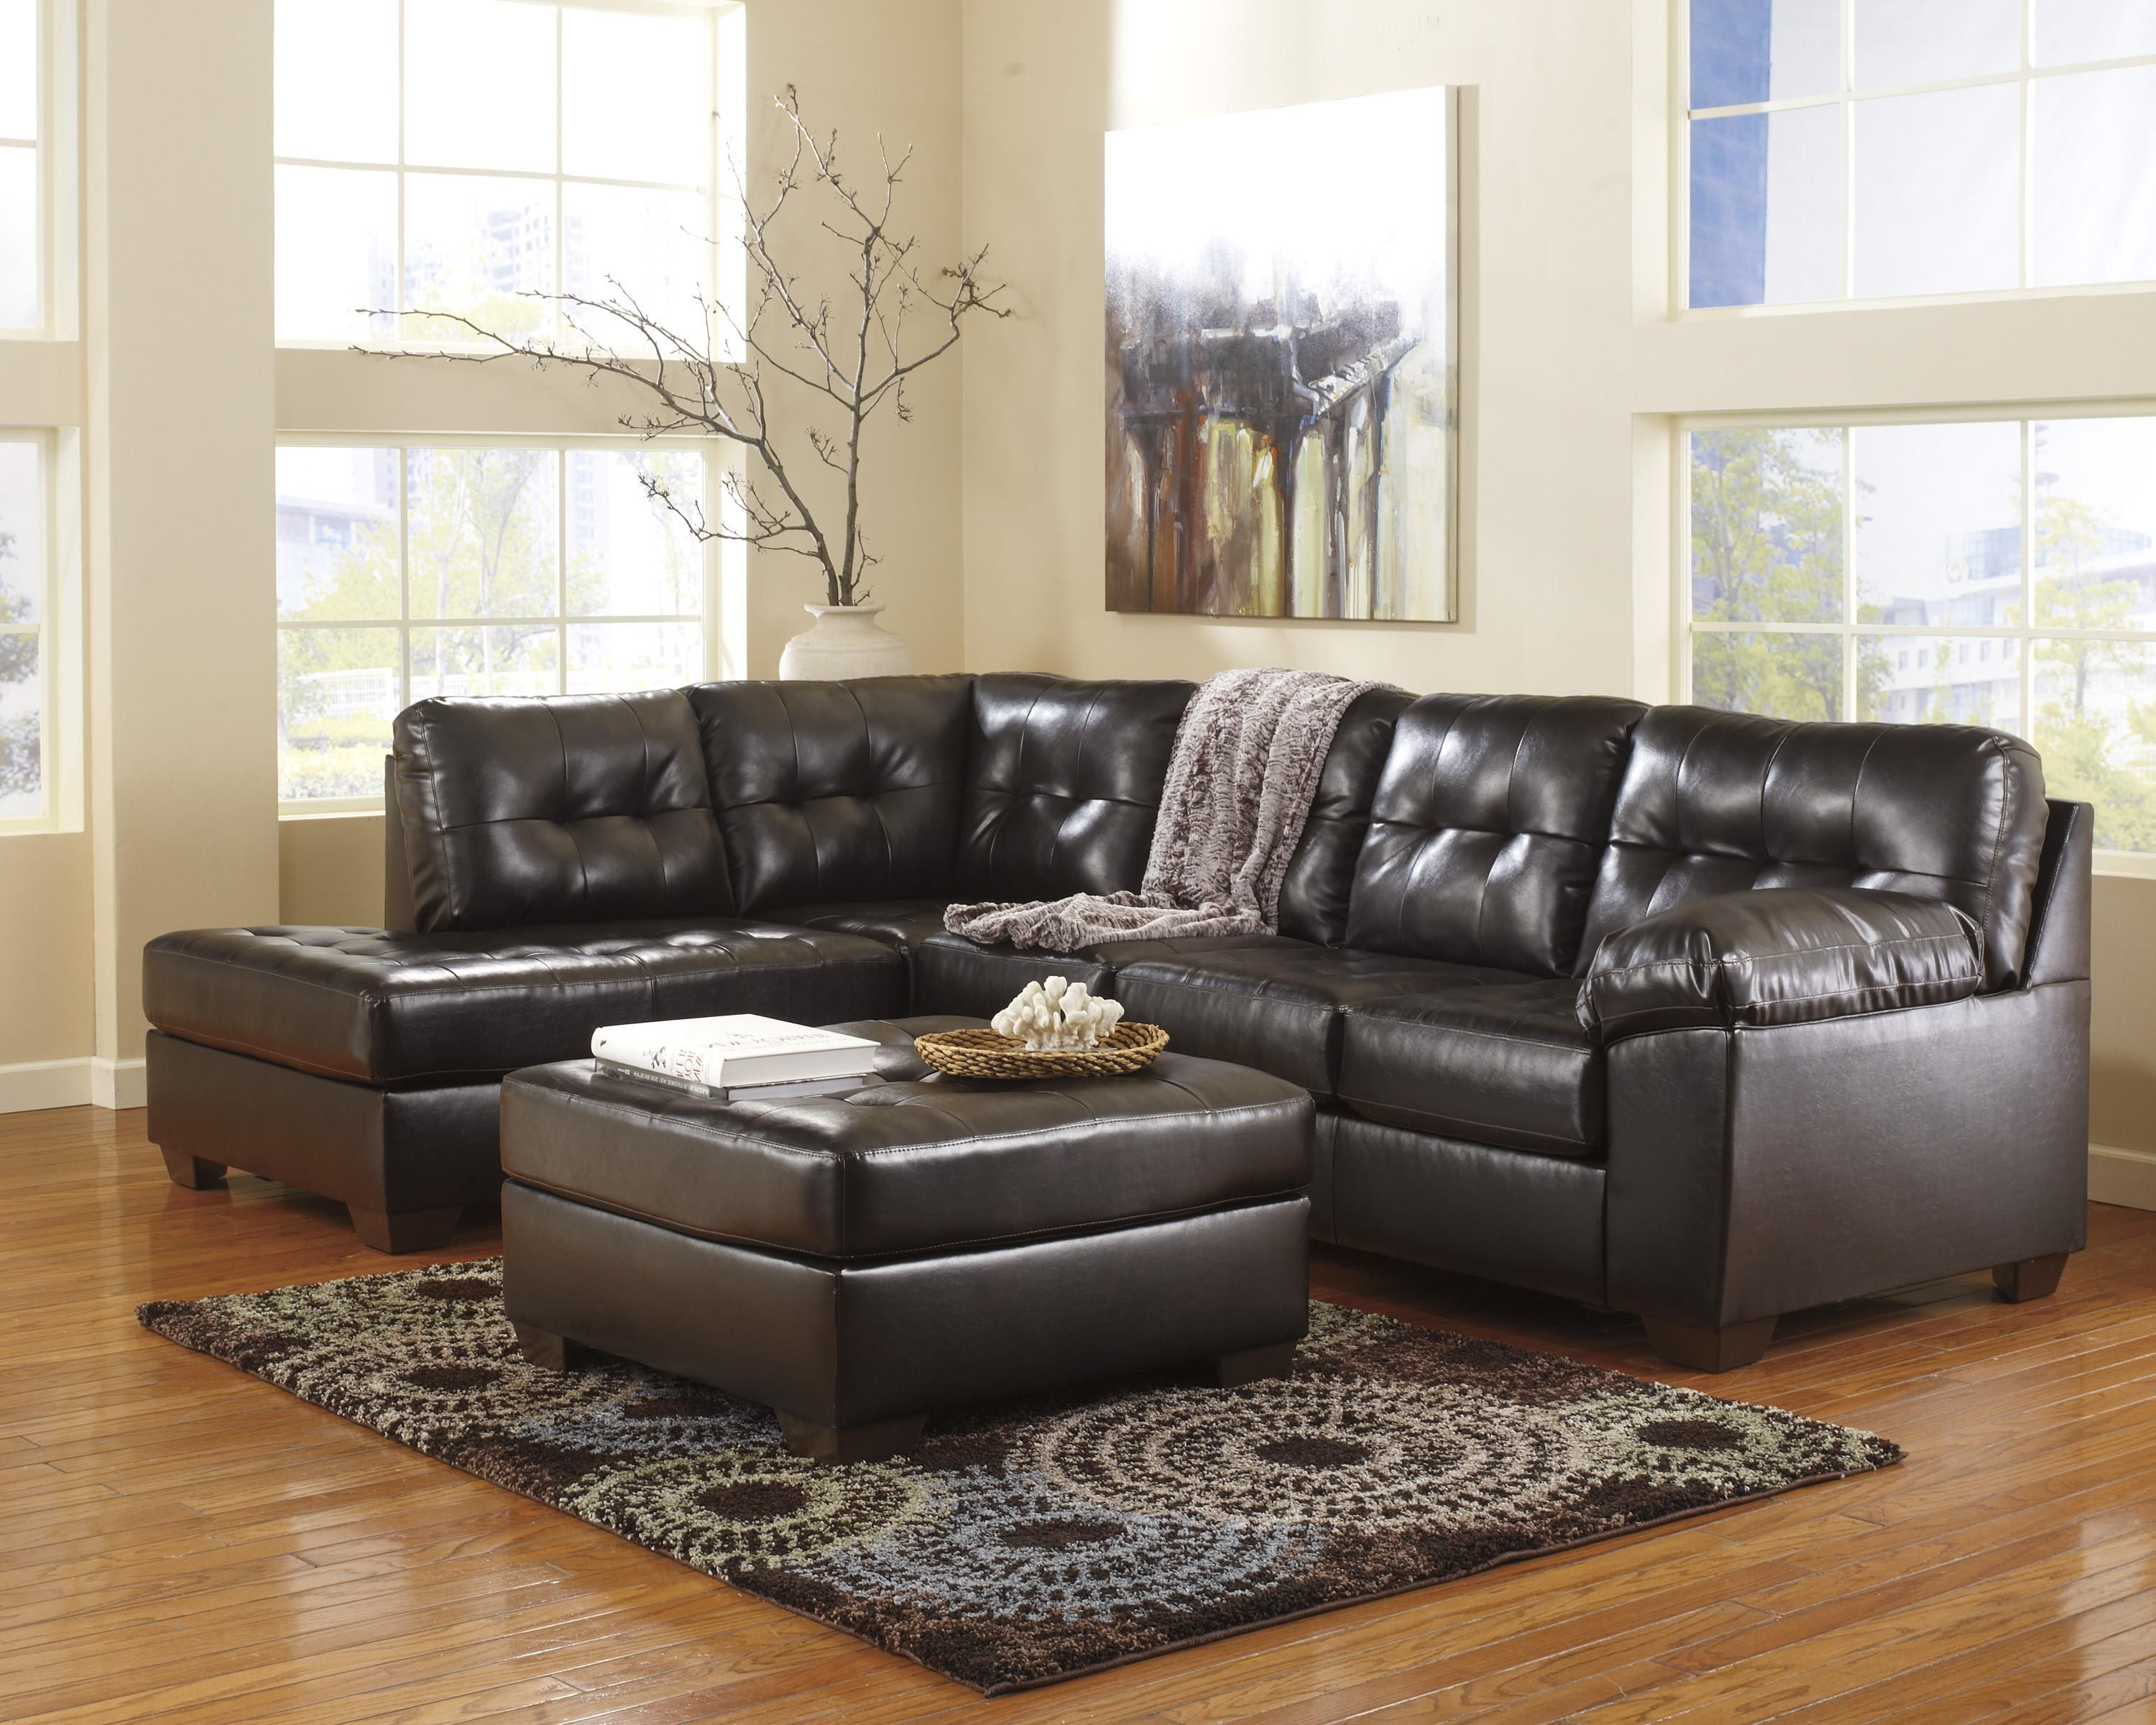 Alliston DuraBlend Chocolate Stationary Living Room Group by